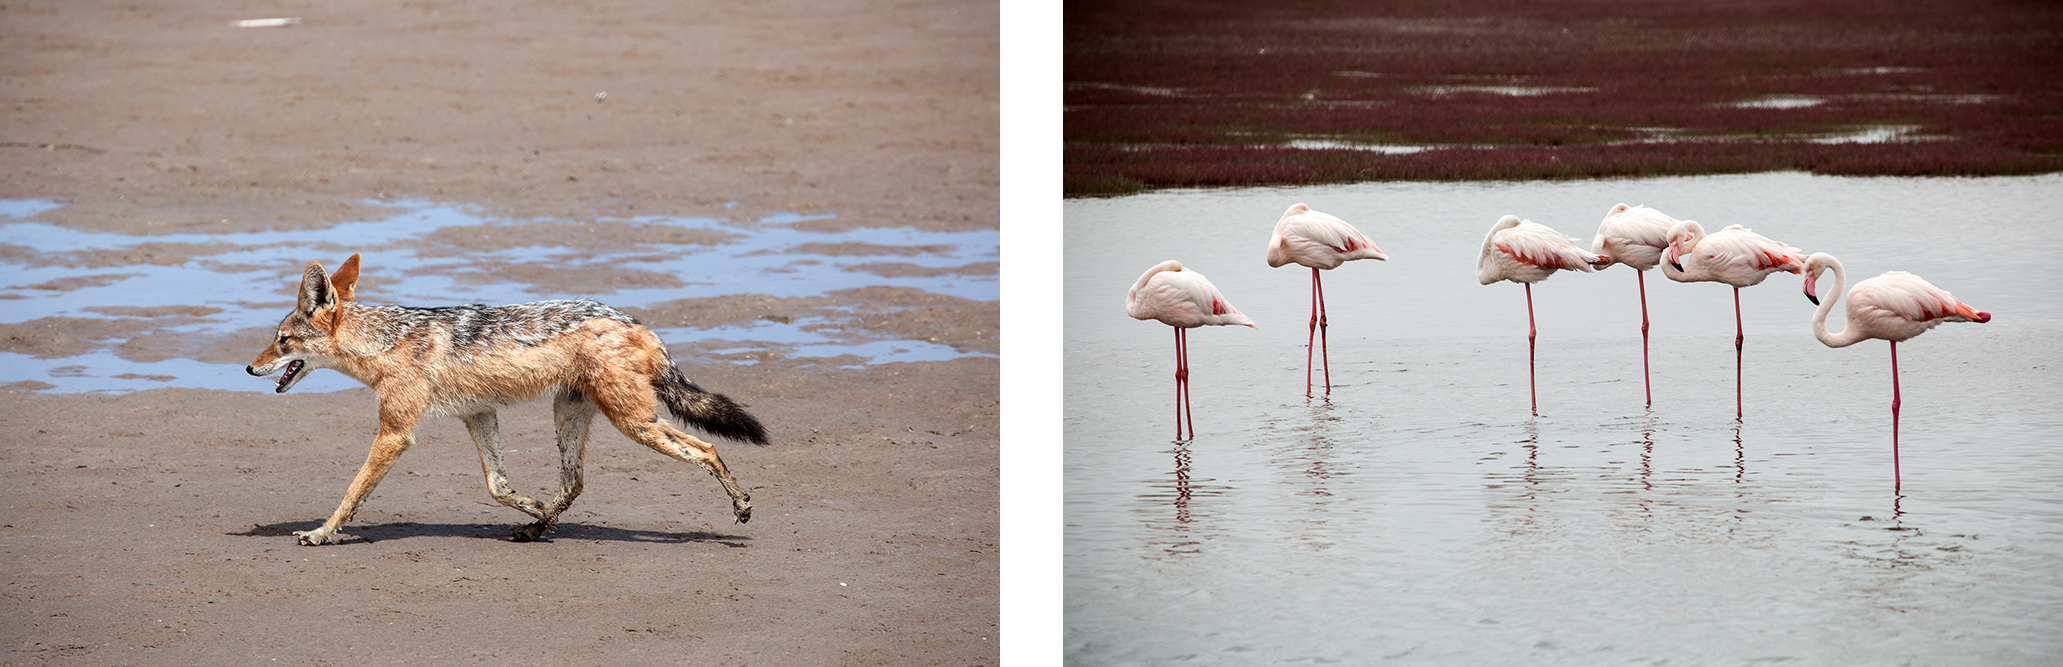 flamands-roses-chacal-namibie